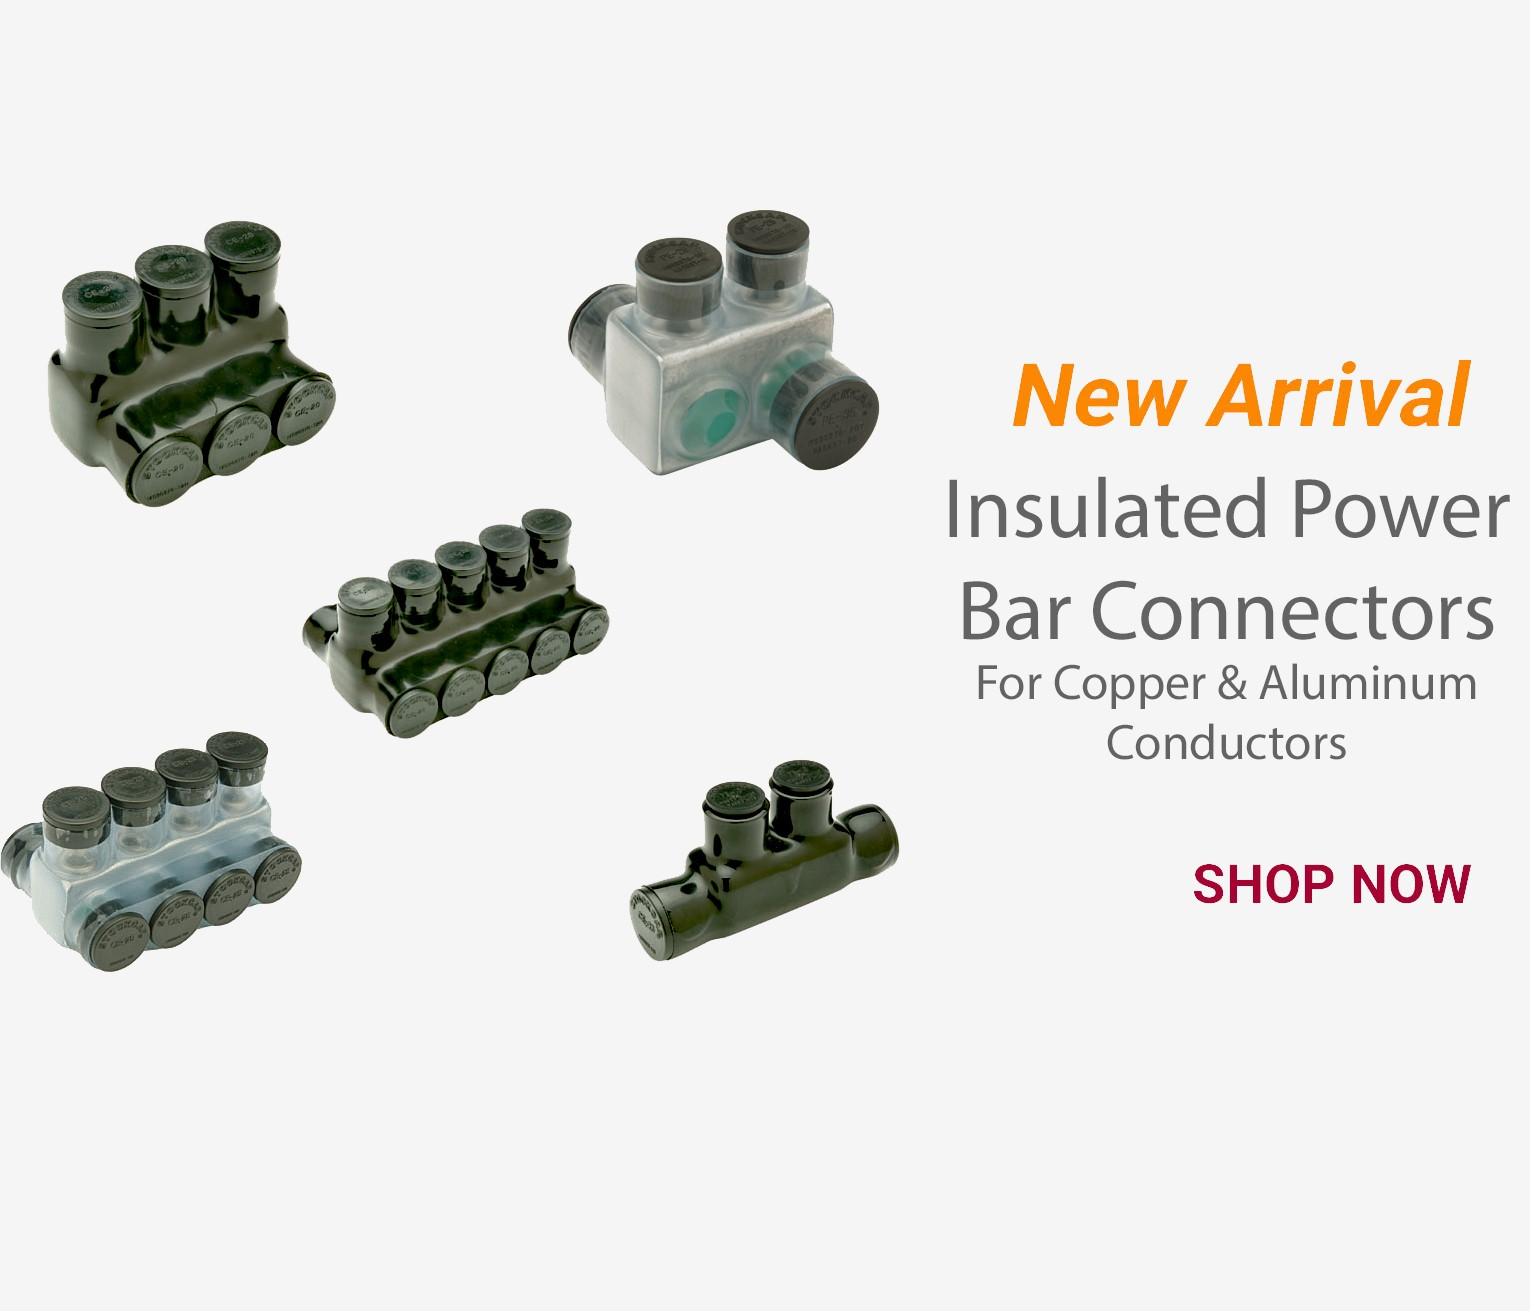 Insulated Power Bar Connectors